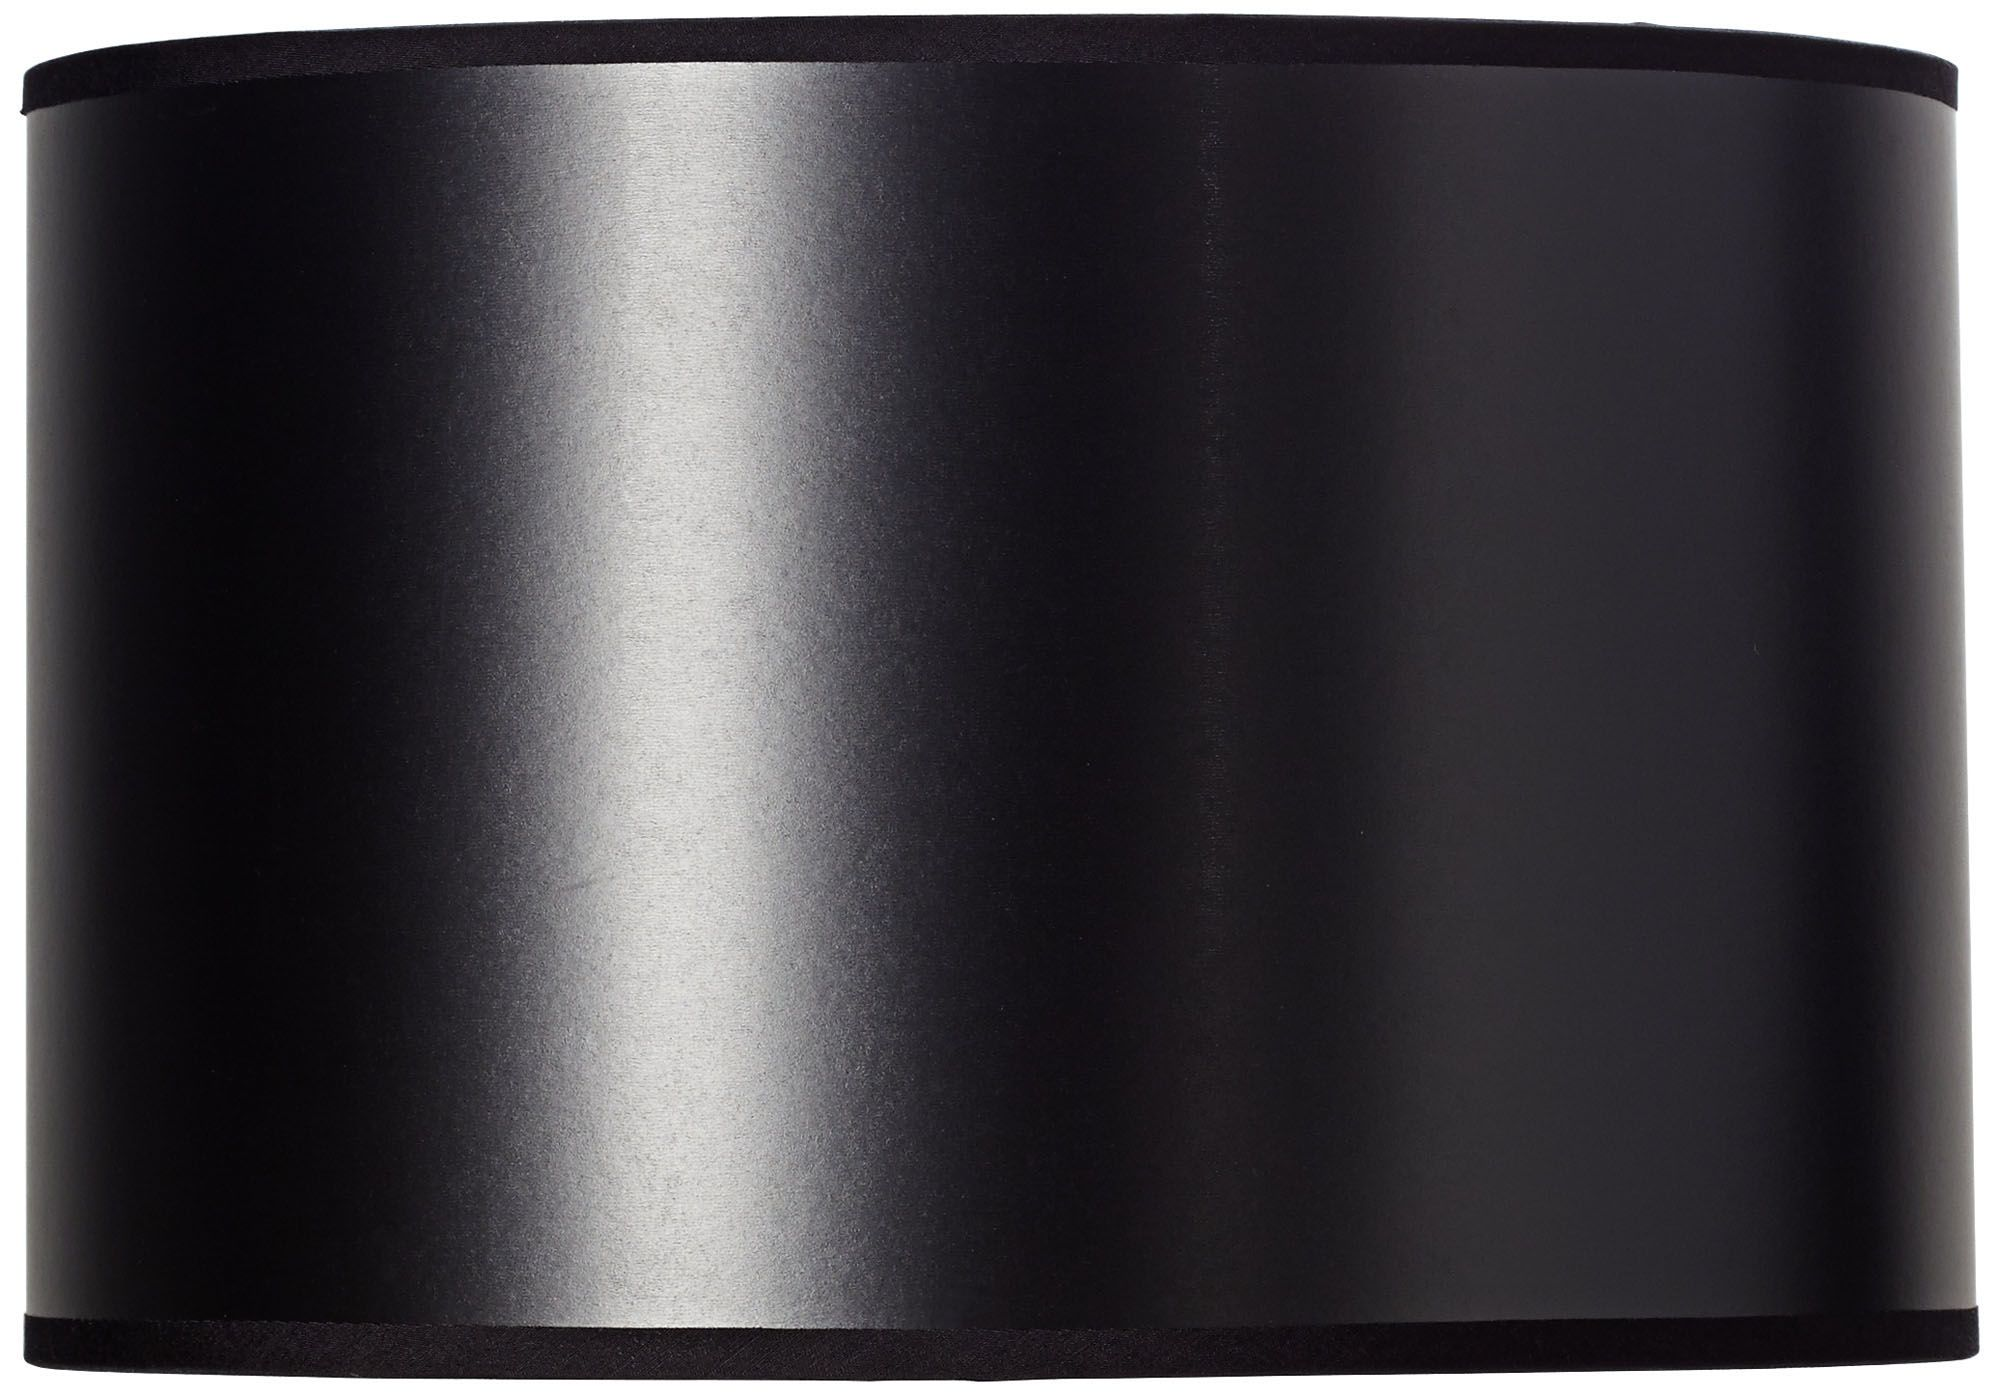 black paper drum shade with silver lining 12x12x8 - Drum Shade